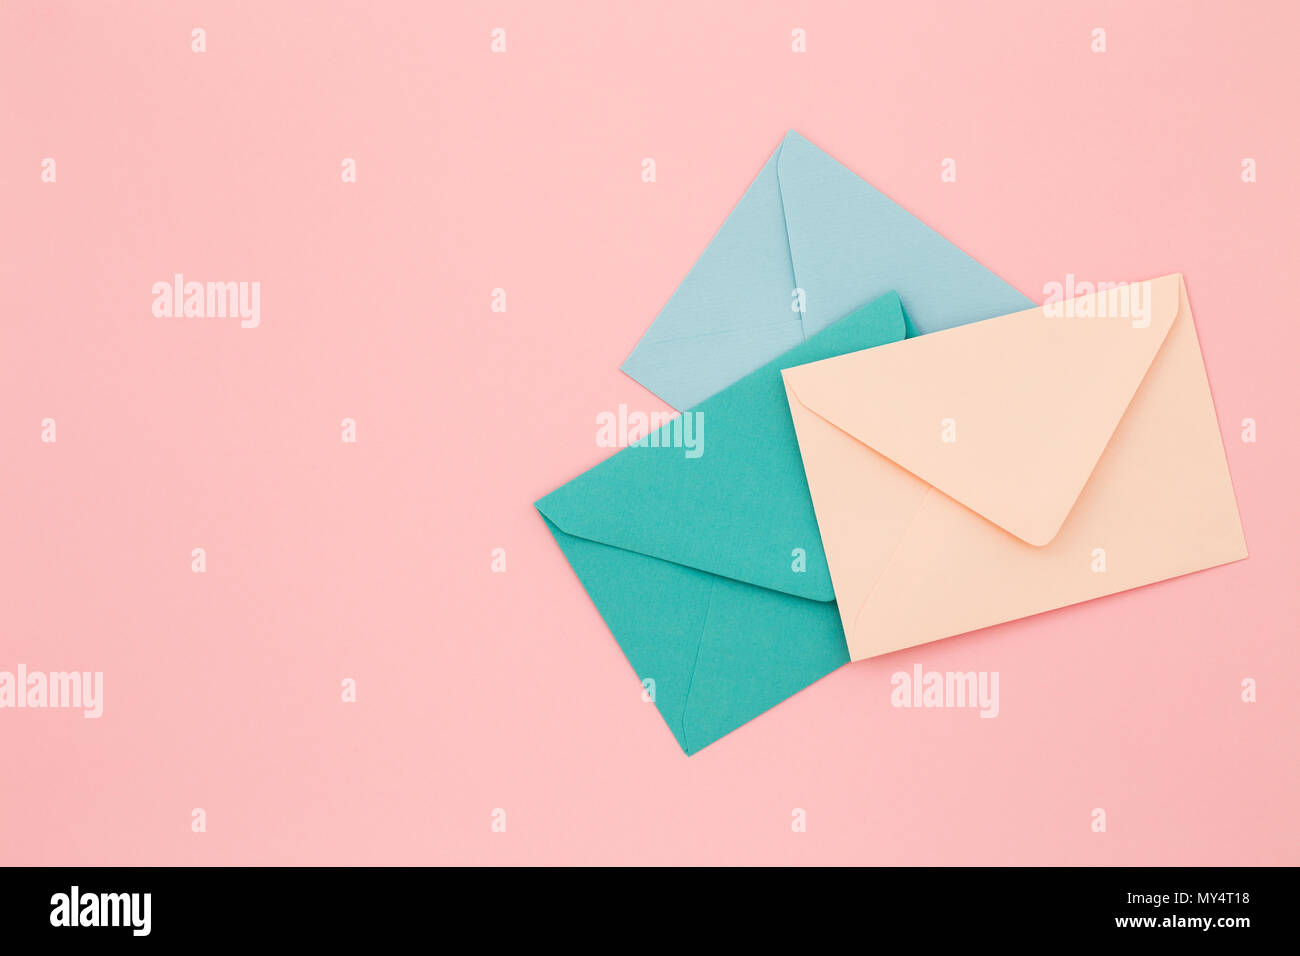 Three colored envelopes on pink background. Minimalist styled composition, top view, correspondence concept. - Stock Image